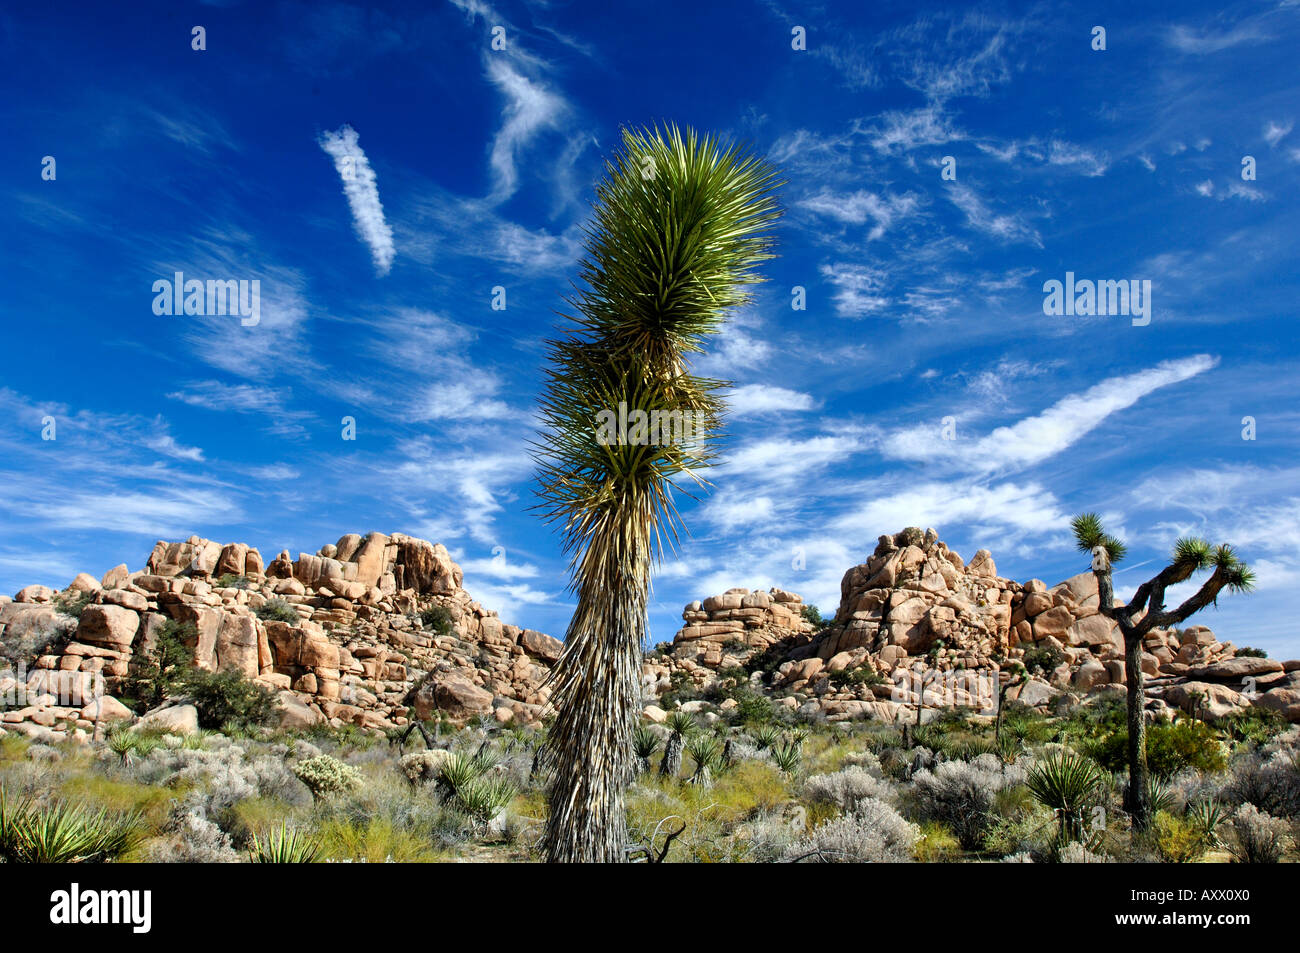 A Joshua Tree against a blue sky and boulders in the Joshua Tree National Park Southern California - Stock Image